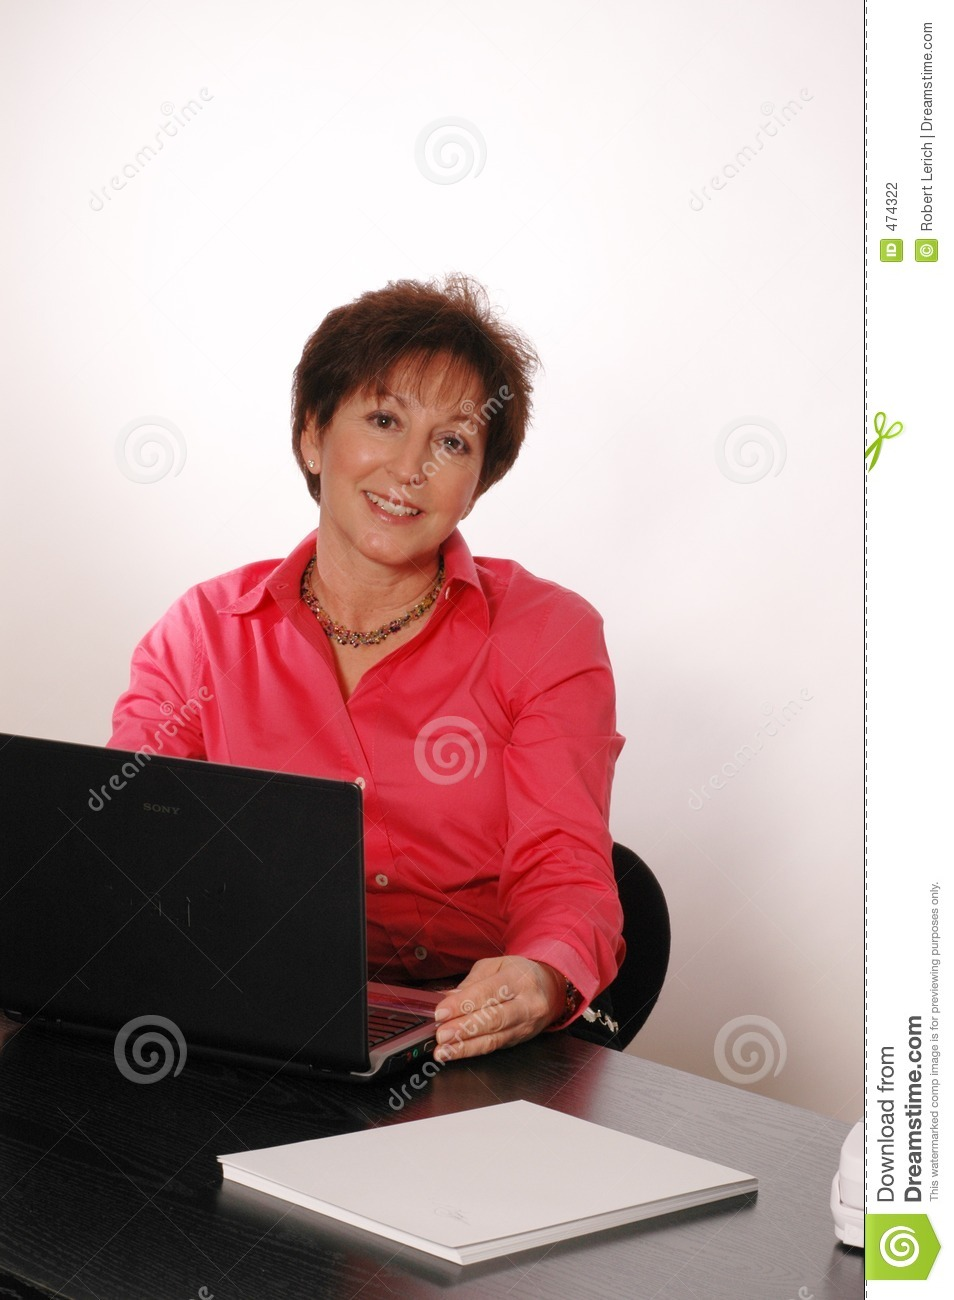 Download Office smile 2076 stock photo. Image of business, attractive - 474322